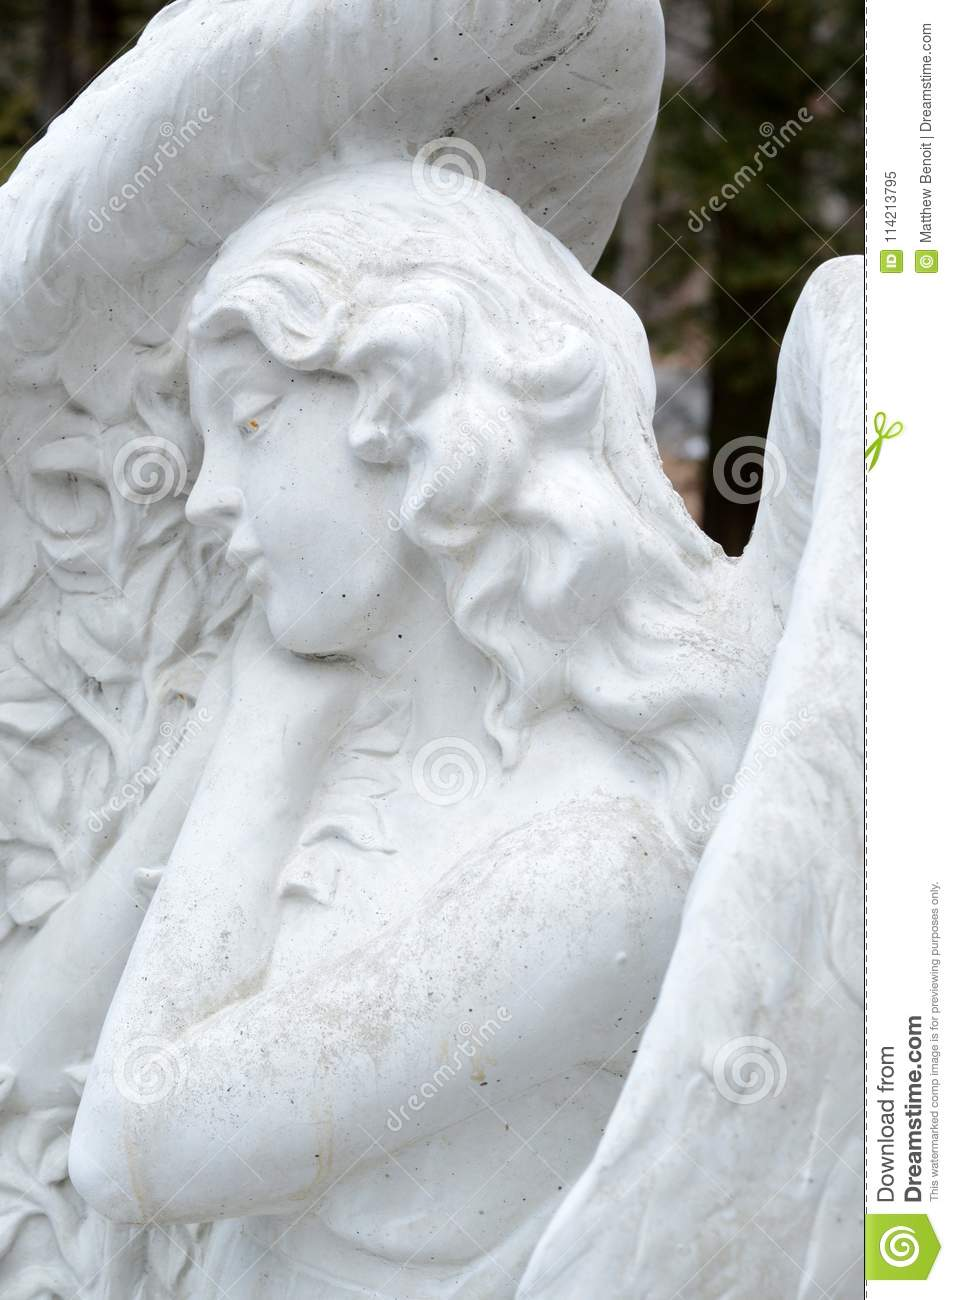 3adbacc0c A beautiful closeup of a guardian angel set in stone watching over the land  of the garden.